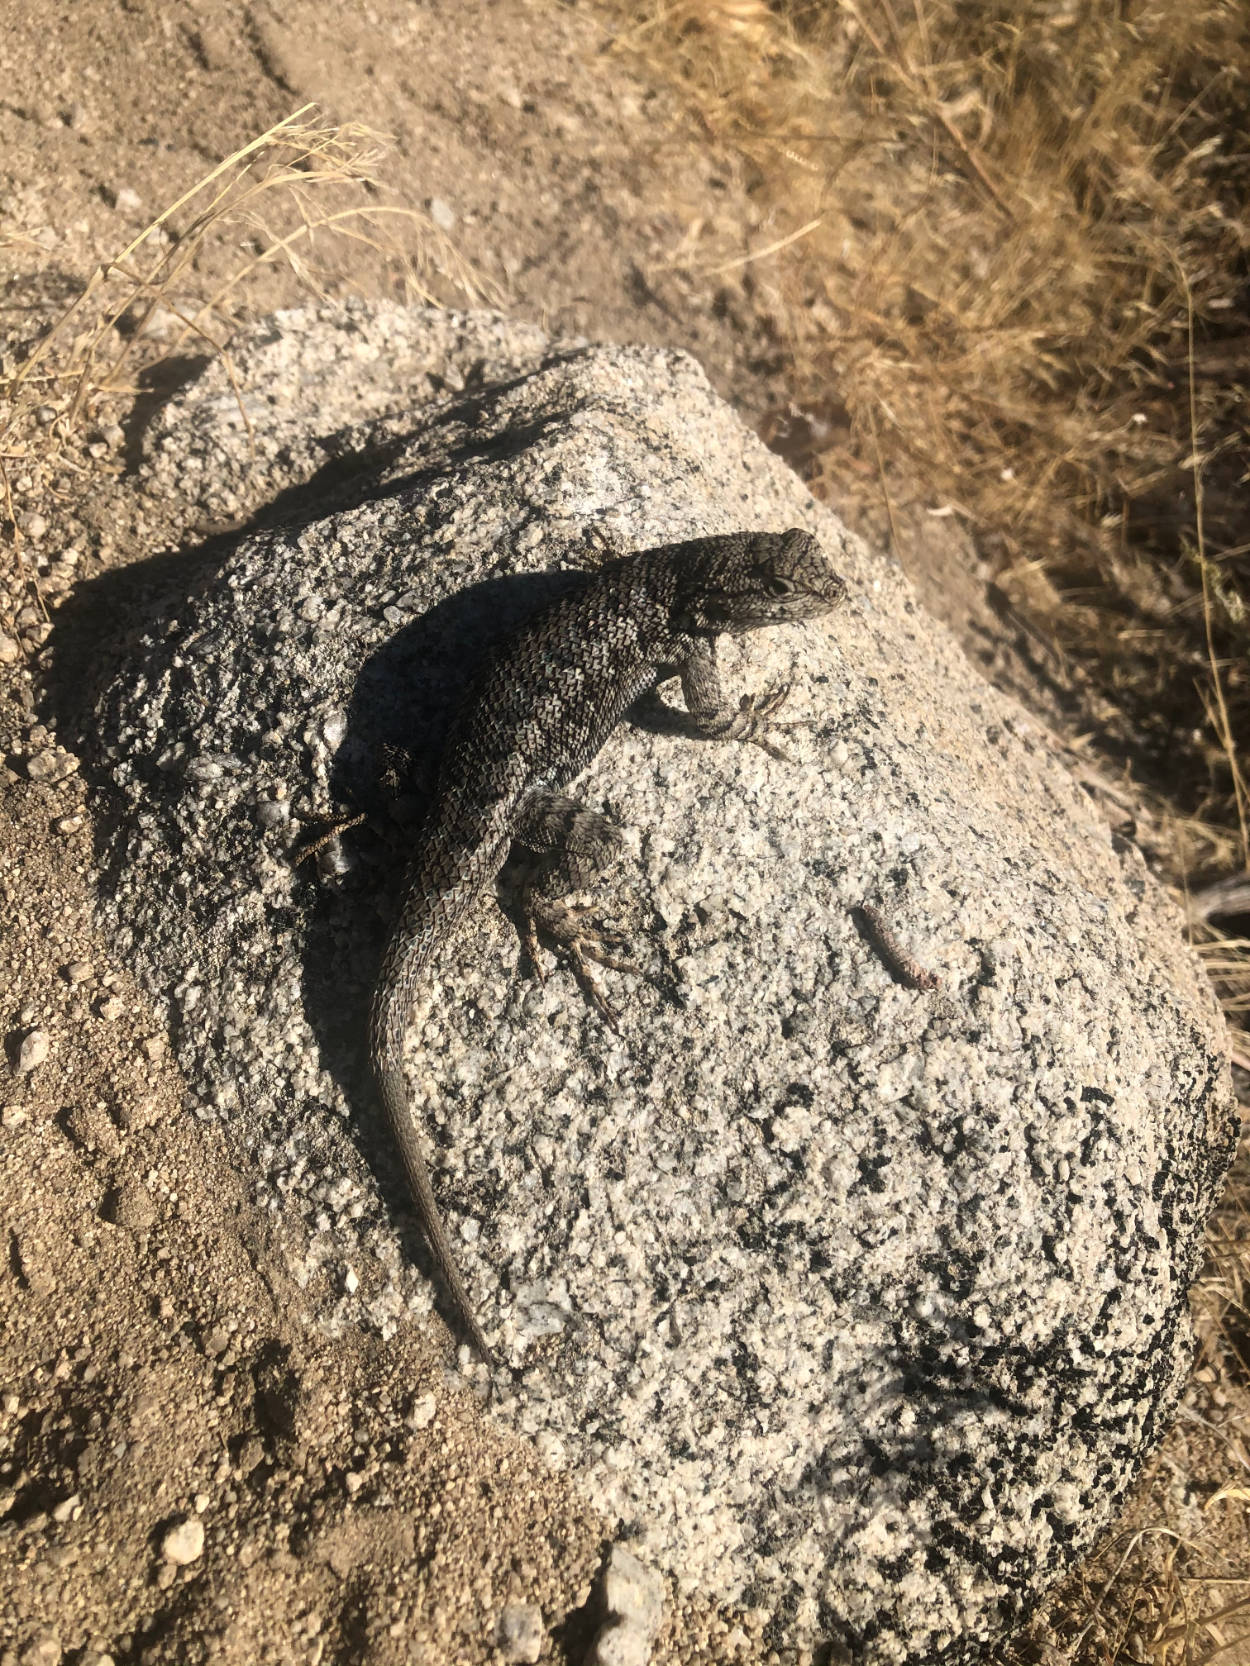 A Western Fence Lizard on a rock in Carson Valley